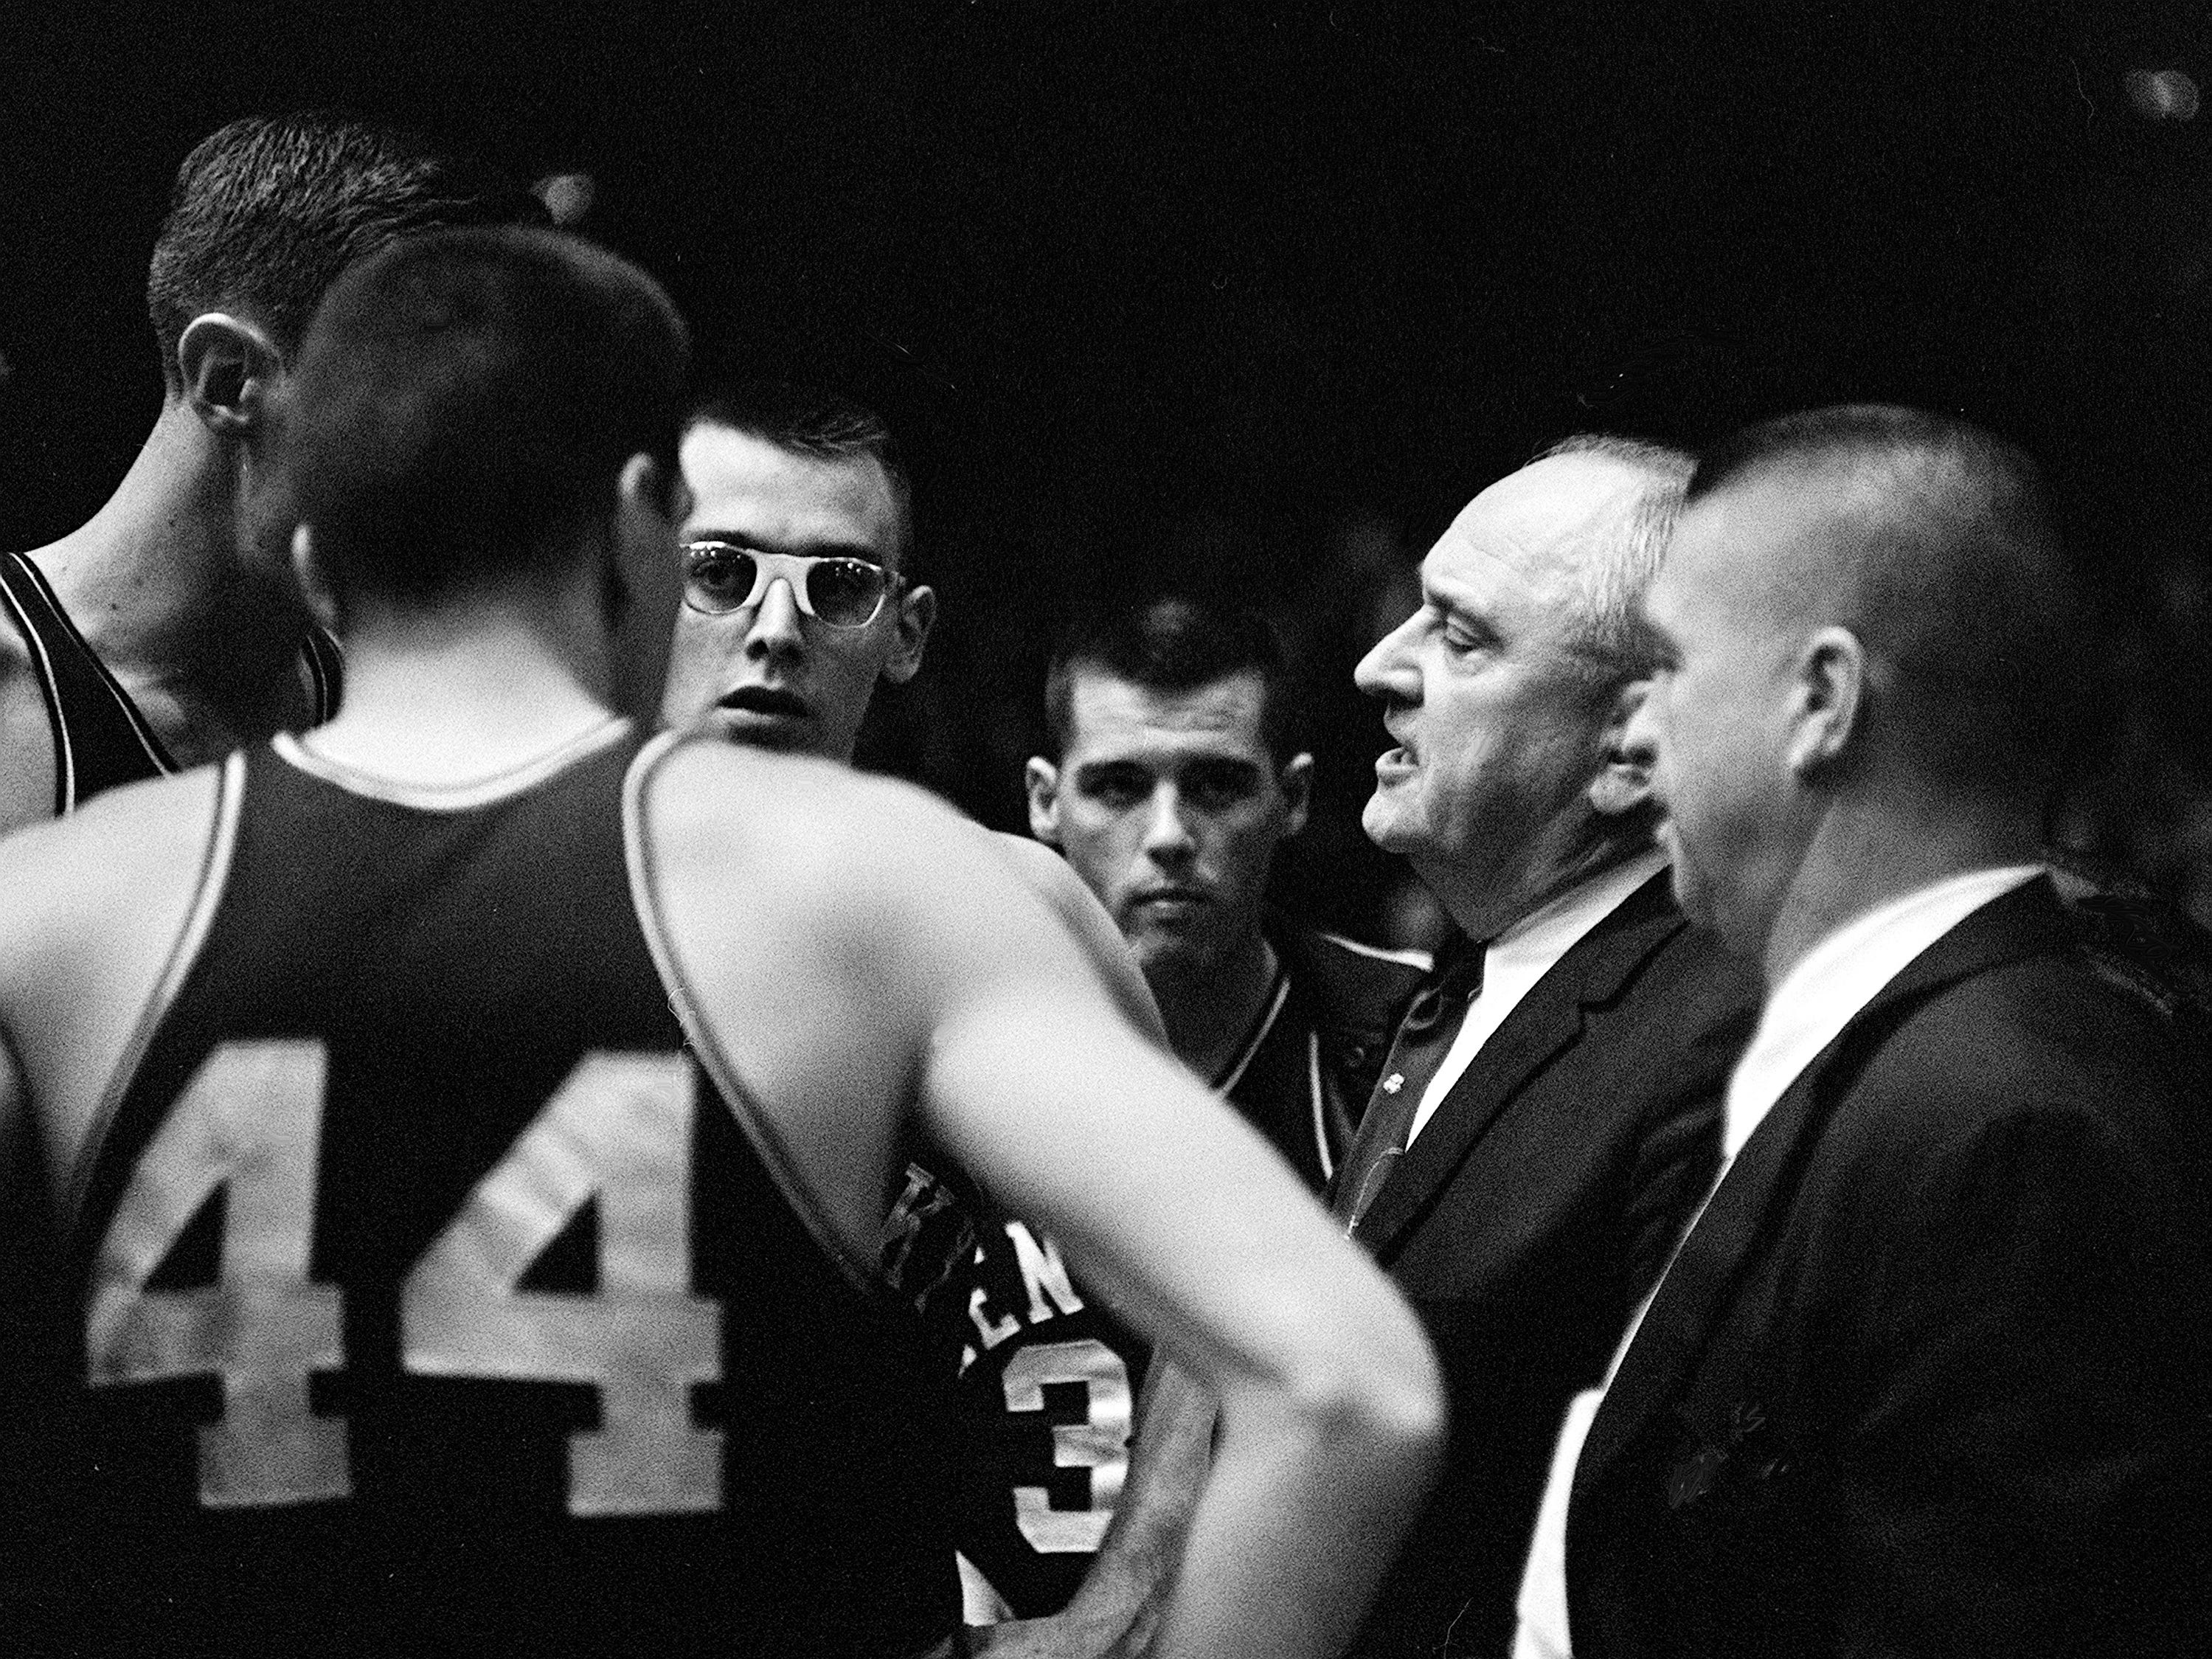 Kentucky head coach Adolph Rupp, second from right, talks with his players during a timeout against Vanderbilt Jan. 9, 1961. The Wildcats became the Commodores' 11th straight victim, falling 64-62 before 7,324 fans at Memorial Gym.